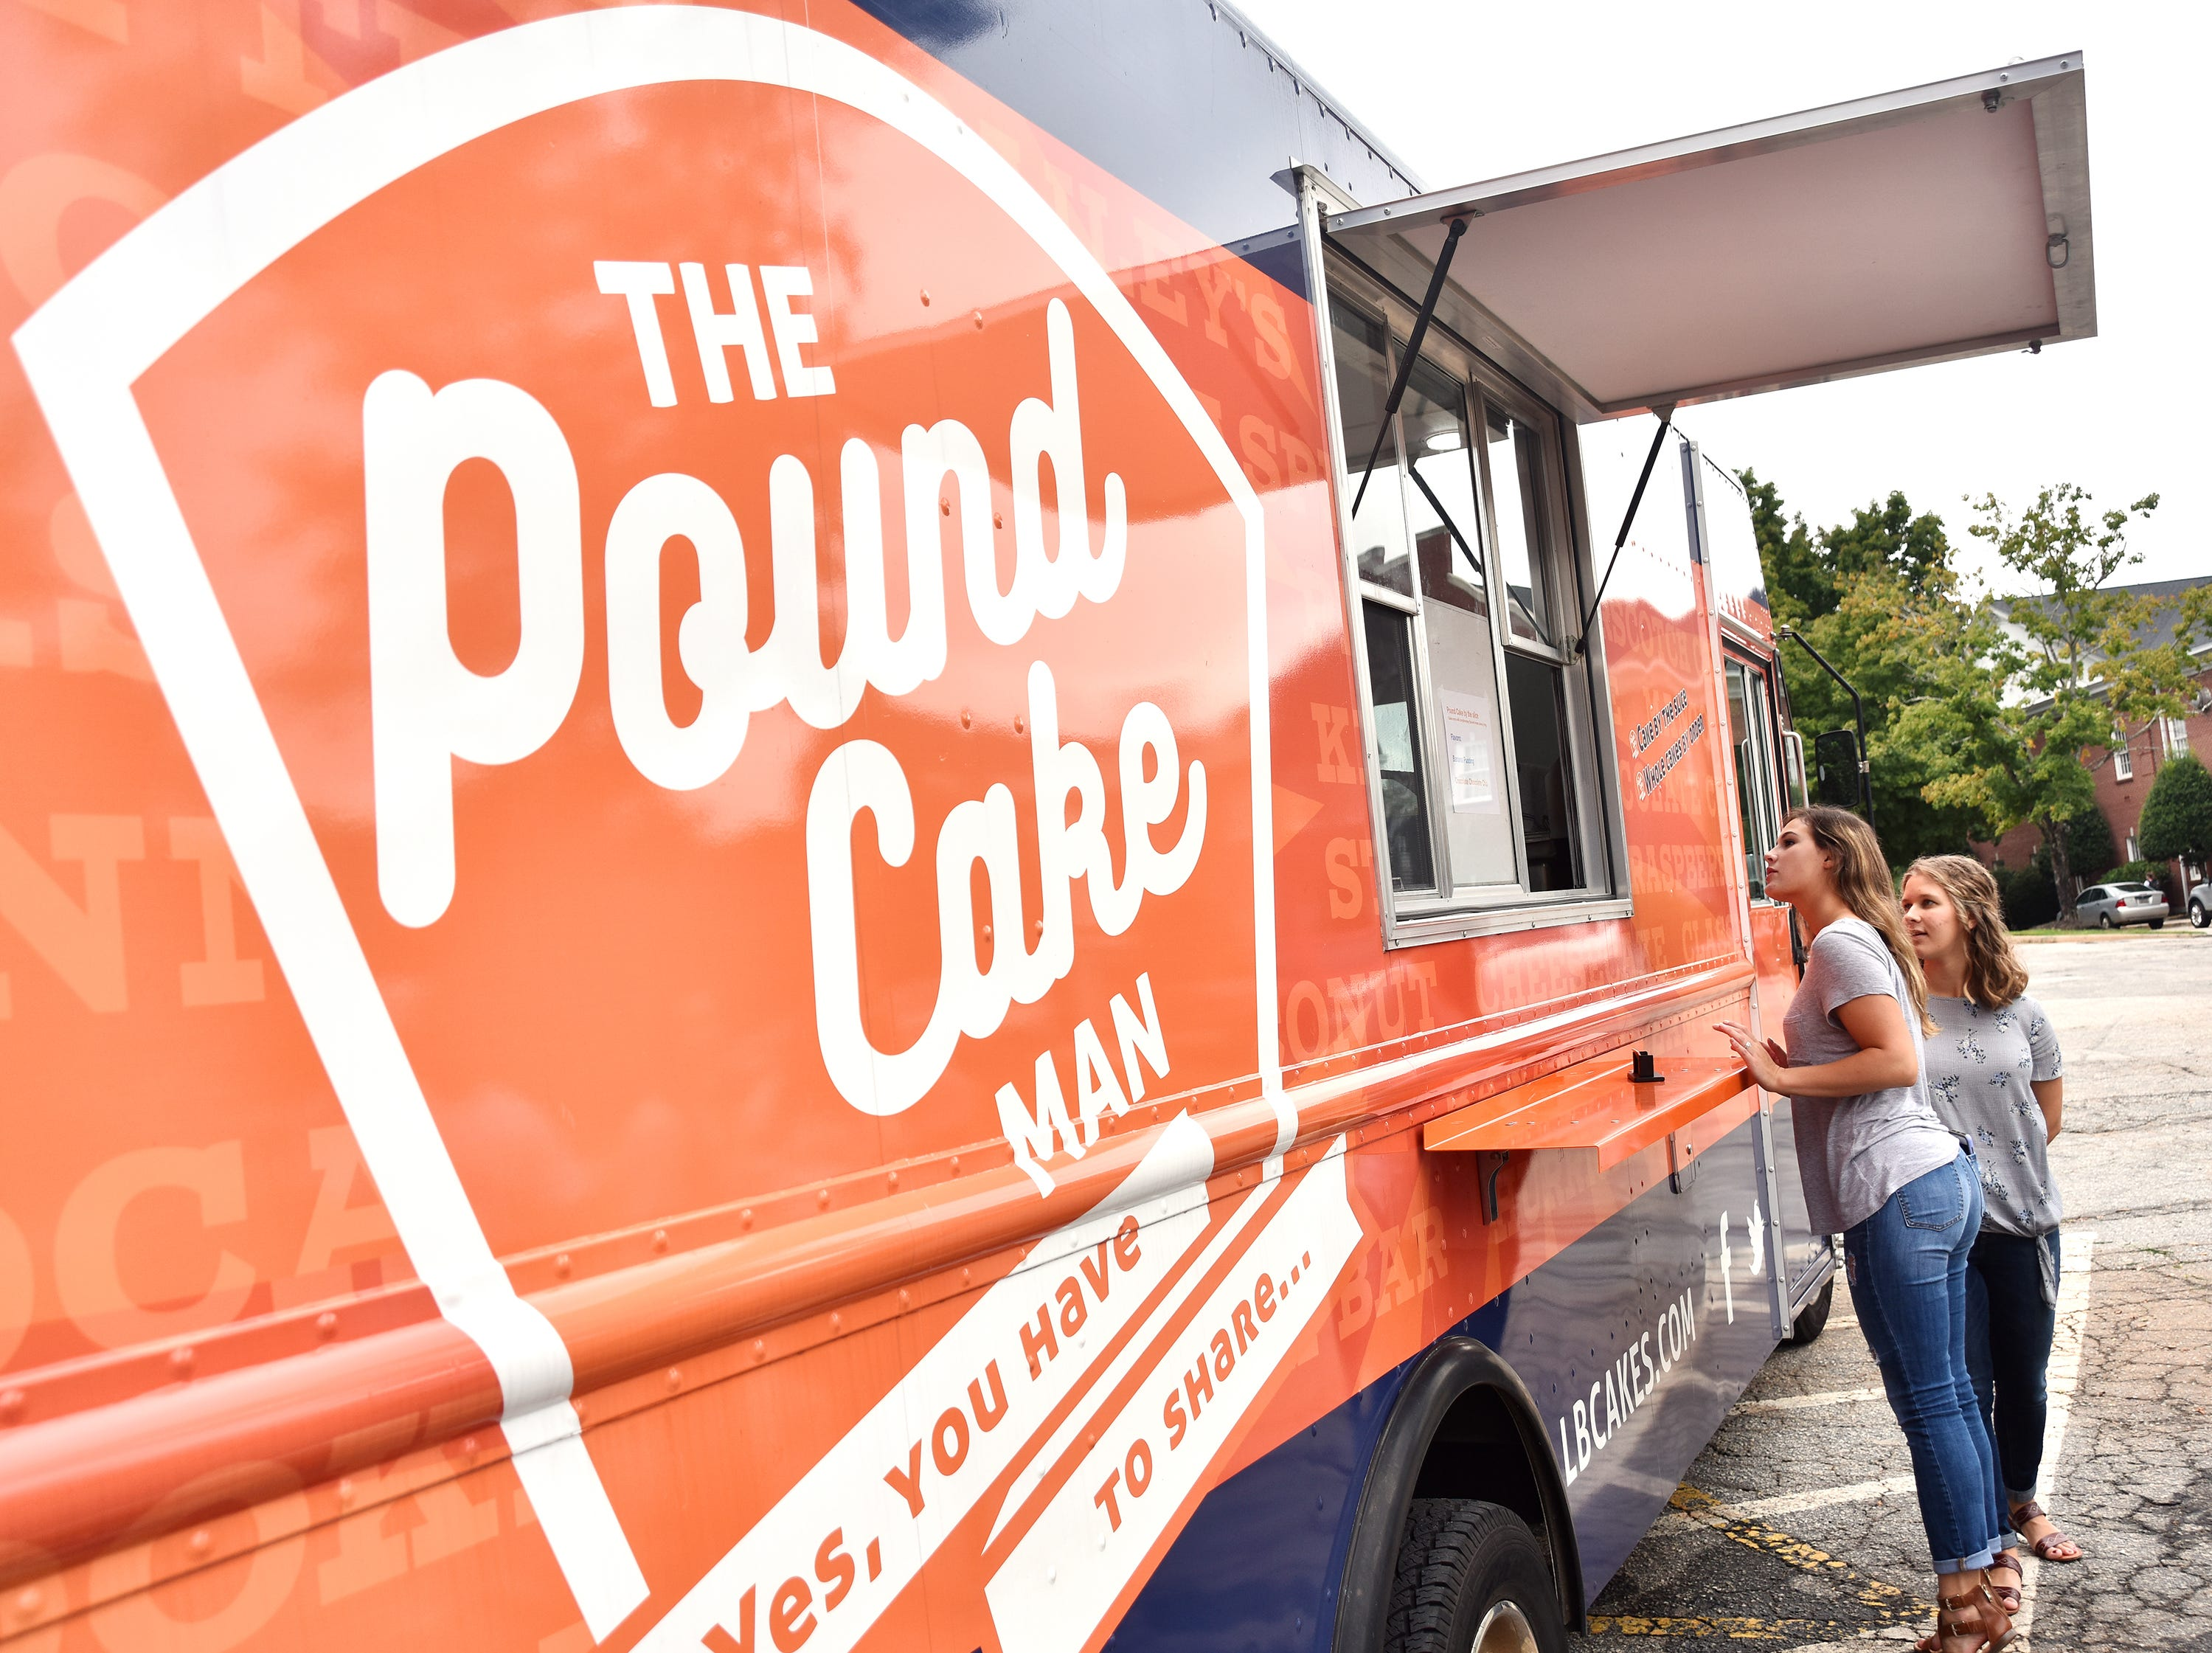 Anderson University students order from The Pound Cake Man food truck.